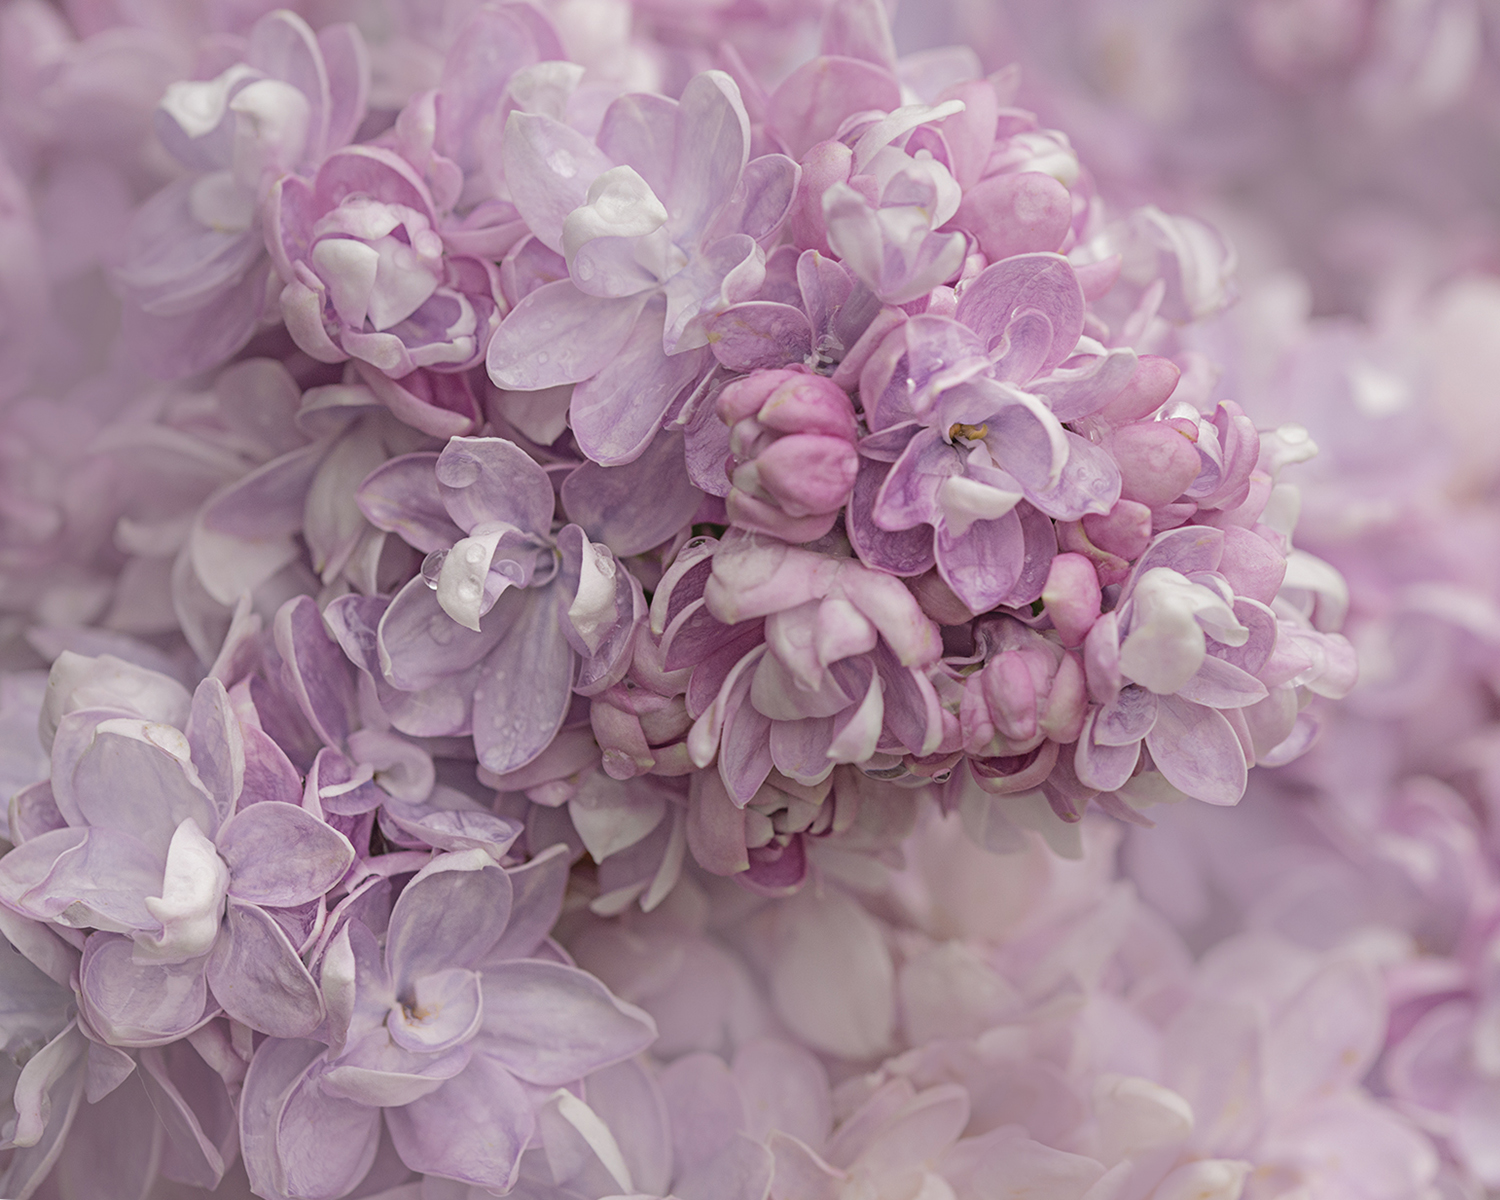 Macro close-up of a unique double lilac variety.